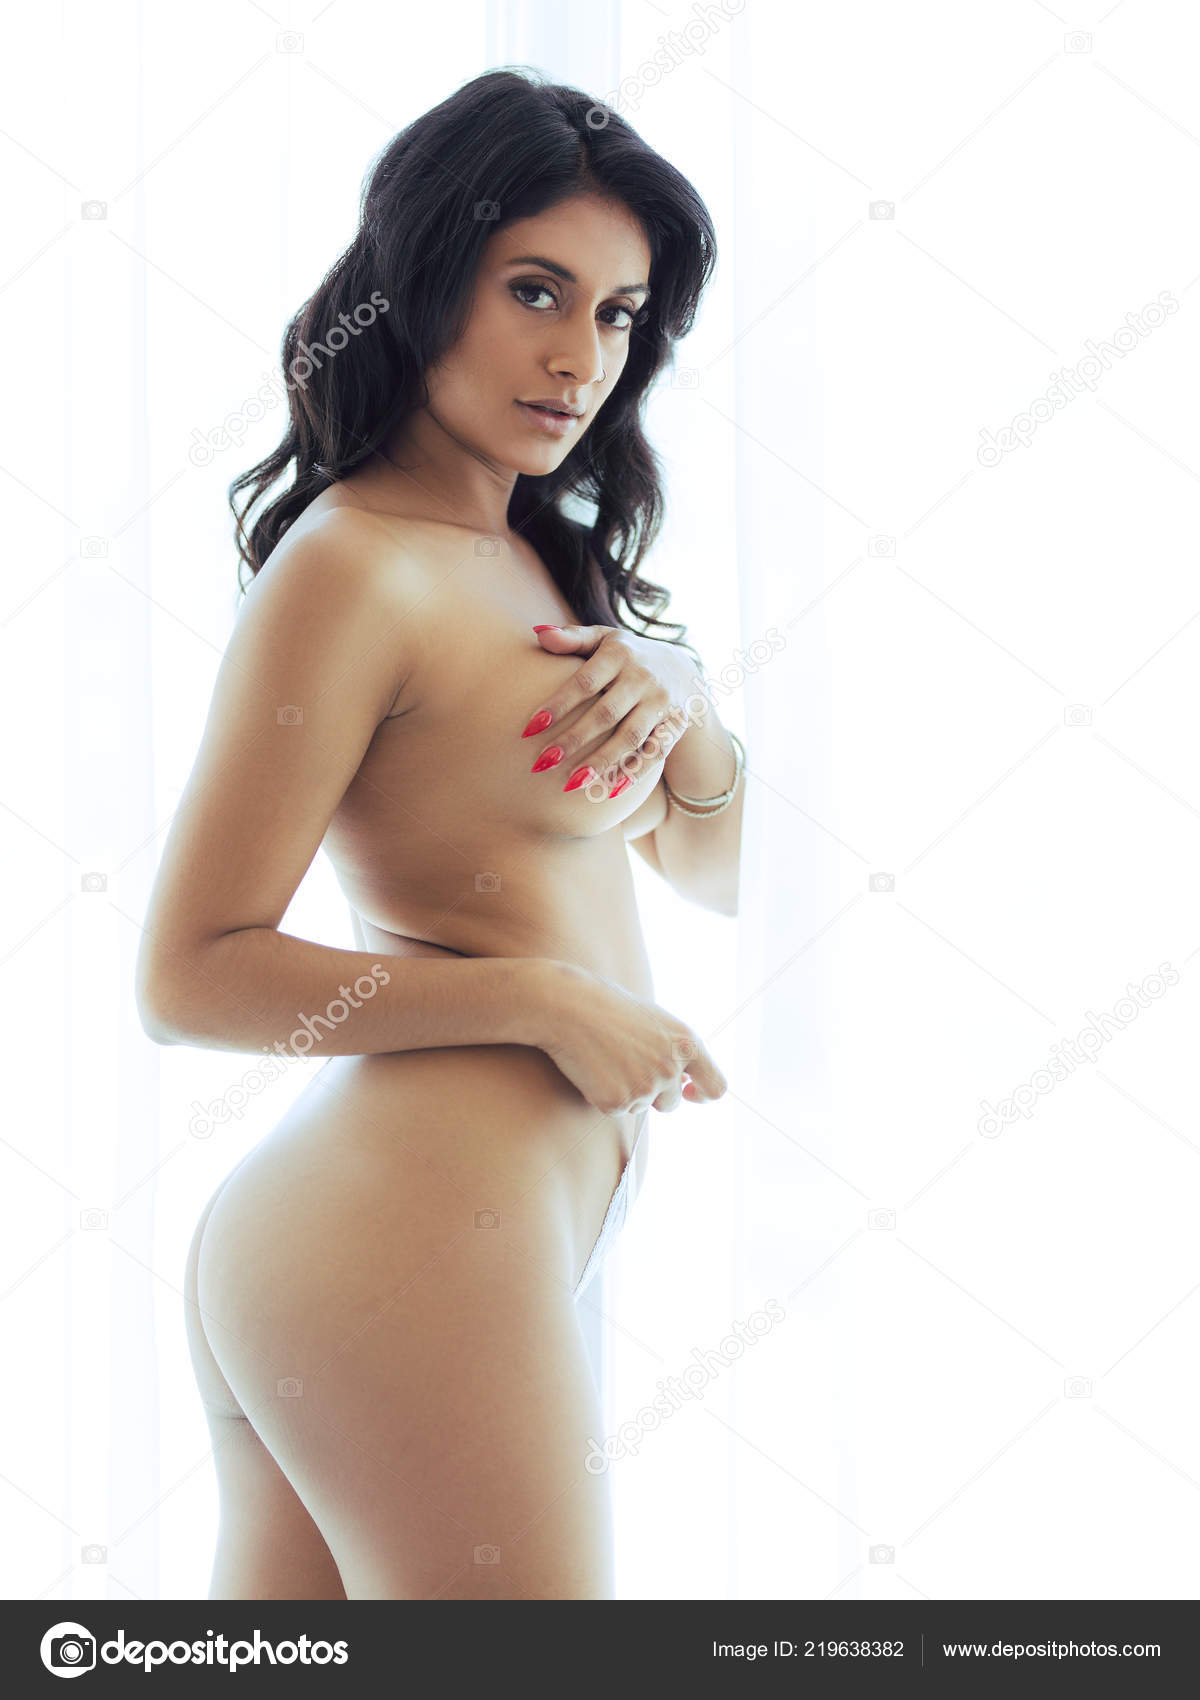 softcore nude girls